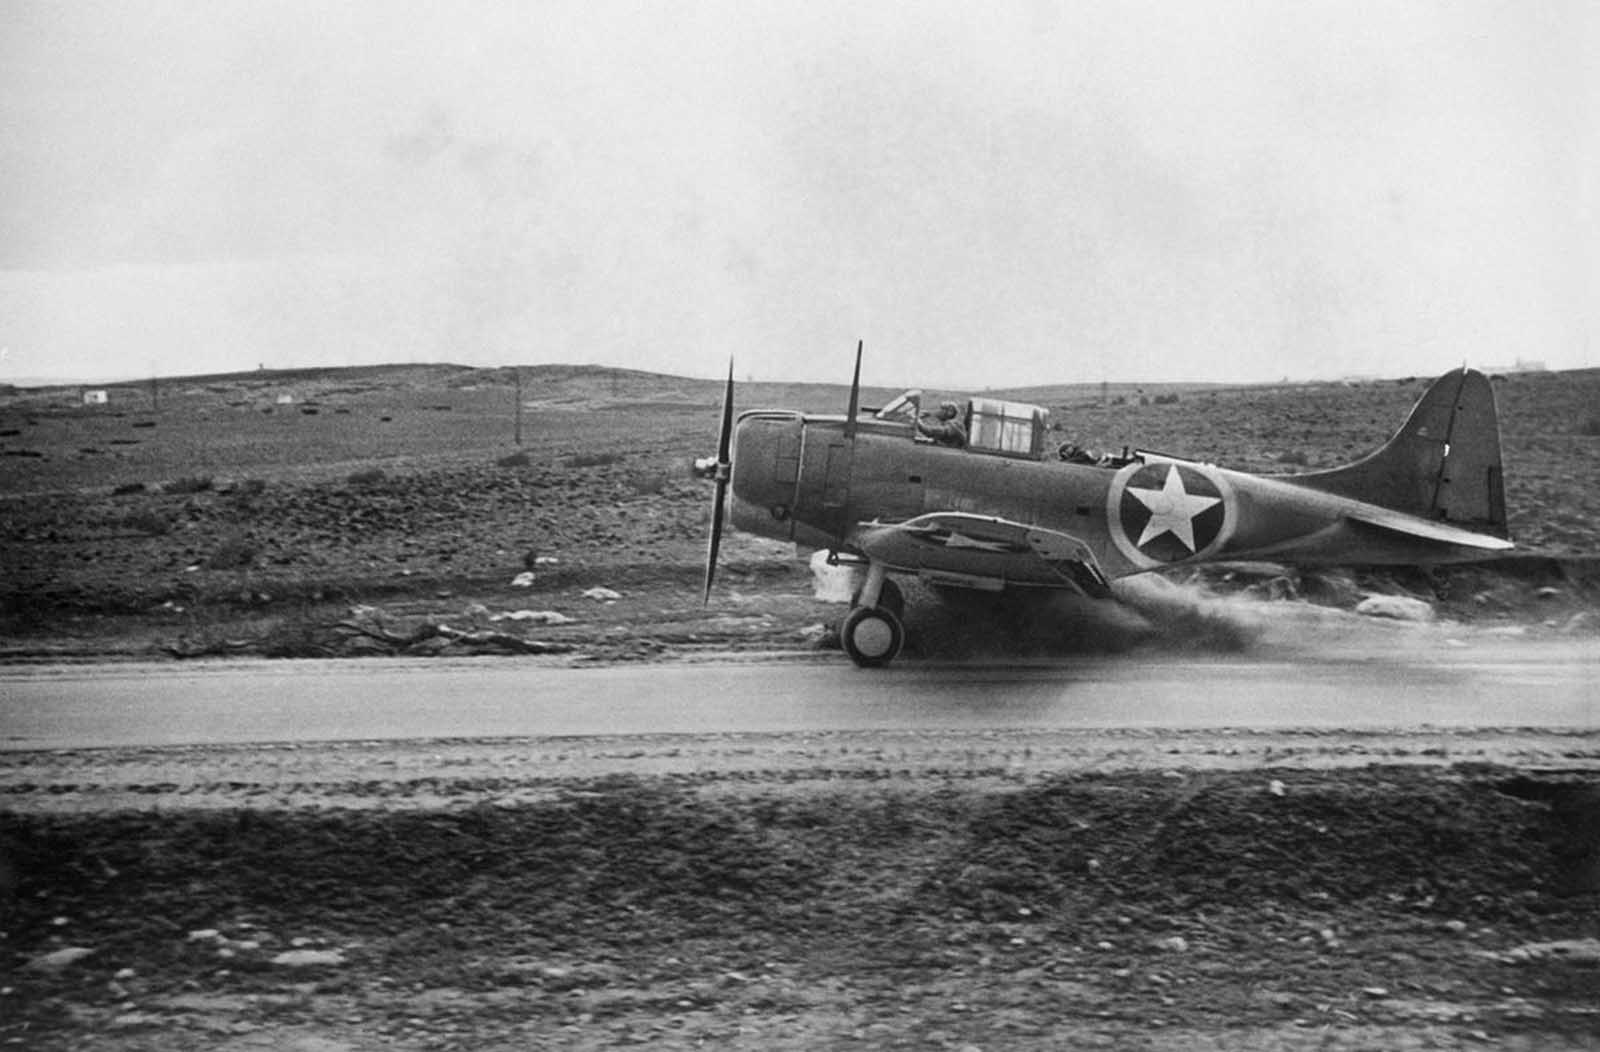 A U.S. Navy dive-bomber uses a road as a runway near Safi, French Morocco, on December 11, 1942, but hits a soft shoulder in the takeoff.